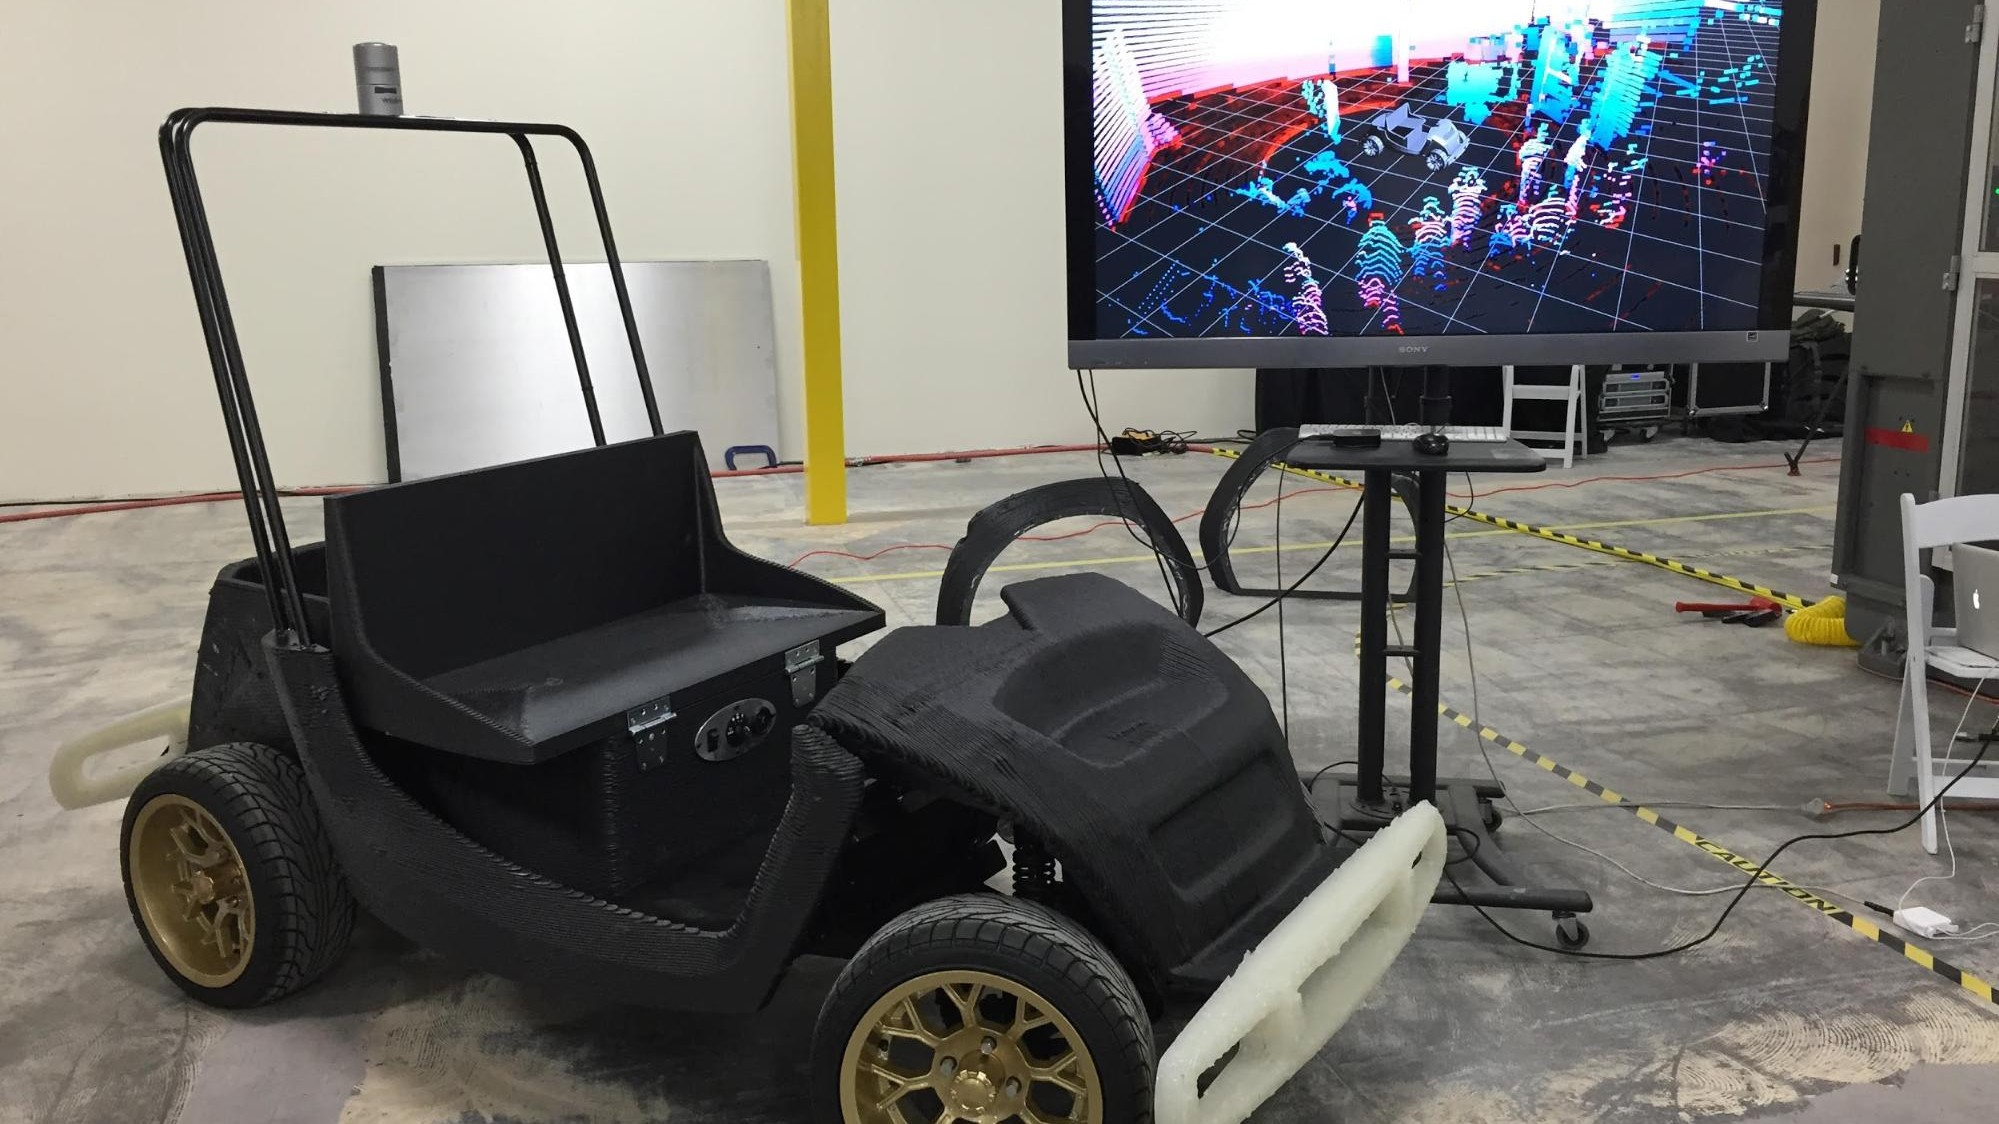 Researchers Are Testing Electric, 3D-Printed, Uber-Like, Self-Driving SmartCarts